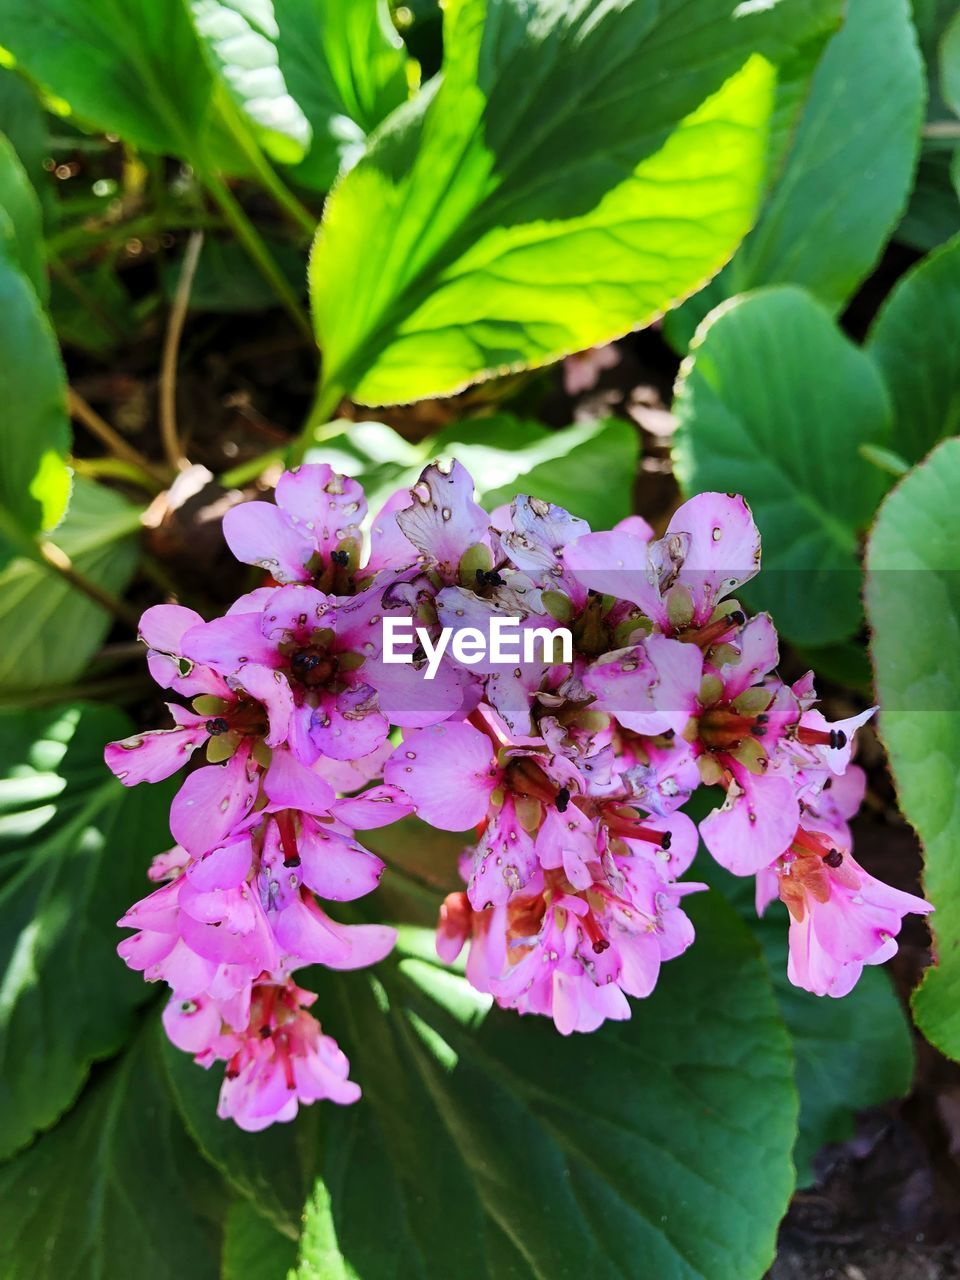 flower, flowering plant, plant, freshness, growth, beauty in nature, fragility, vulnerability, close-up, plant part, leaf, petal, nature, pink color, flower head, botany, inflorescence, day, no people, green color, purple, outdoors, pollen, bunch of flowers, lilac